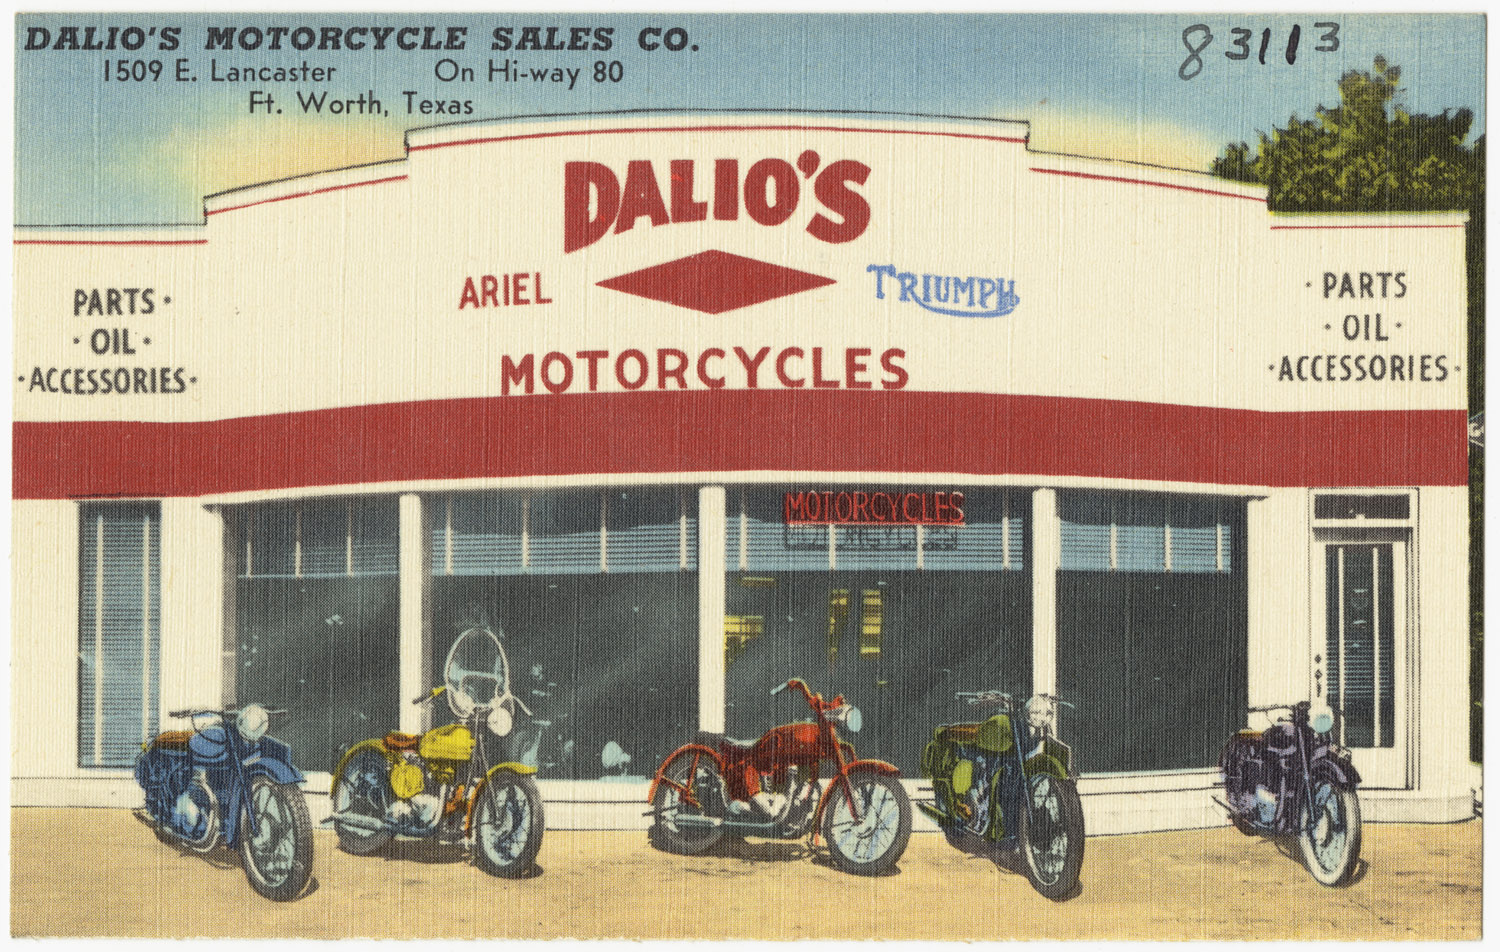 File:Dalios Motorcycle Sales Co., 1509 E. Lancaster, on Hi-